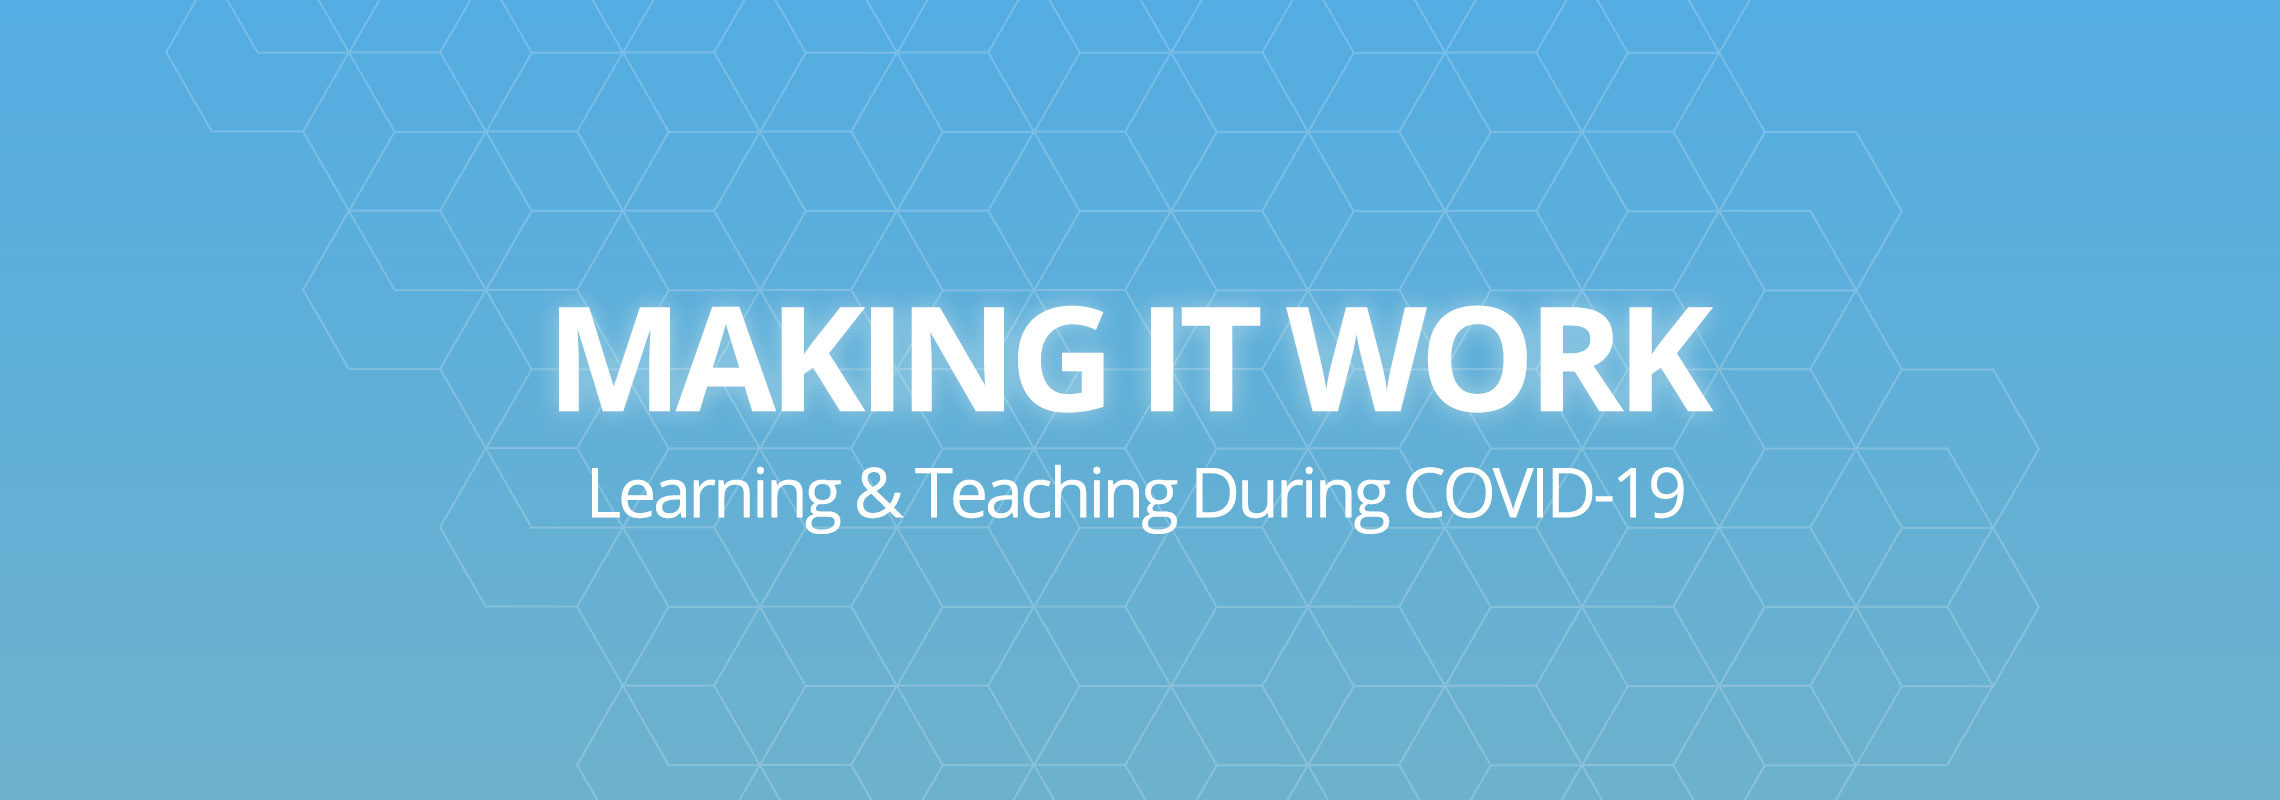 Making It Work - Learning & Teaching During COVID-19